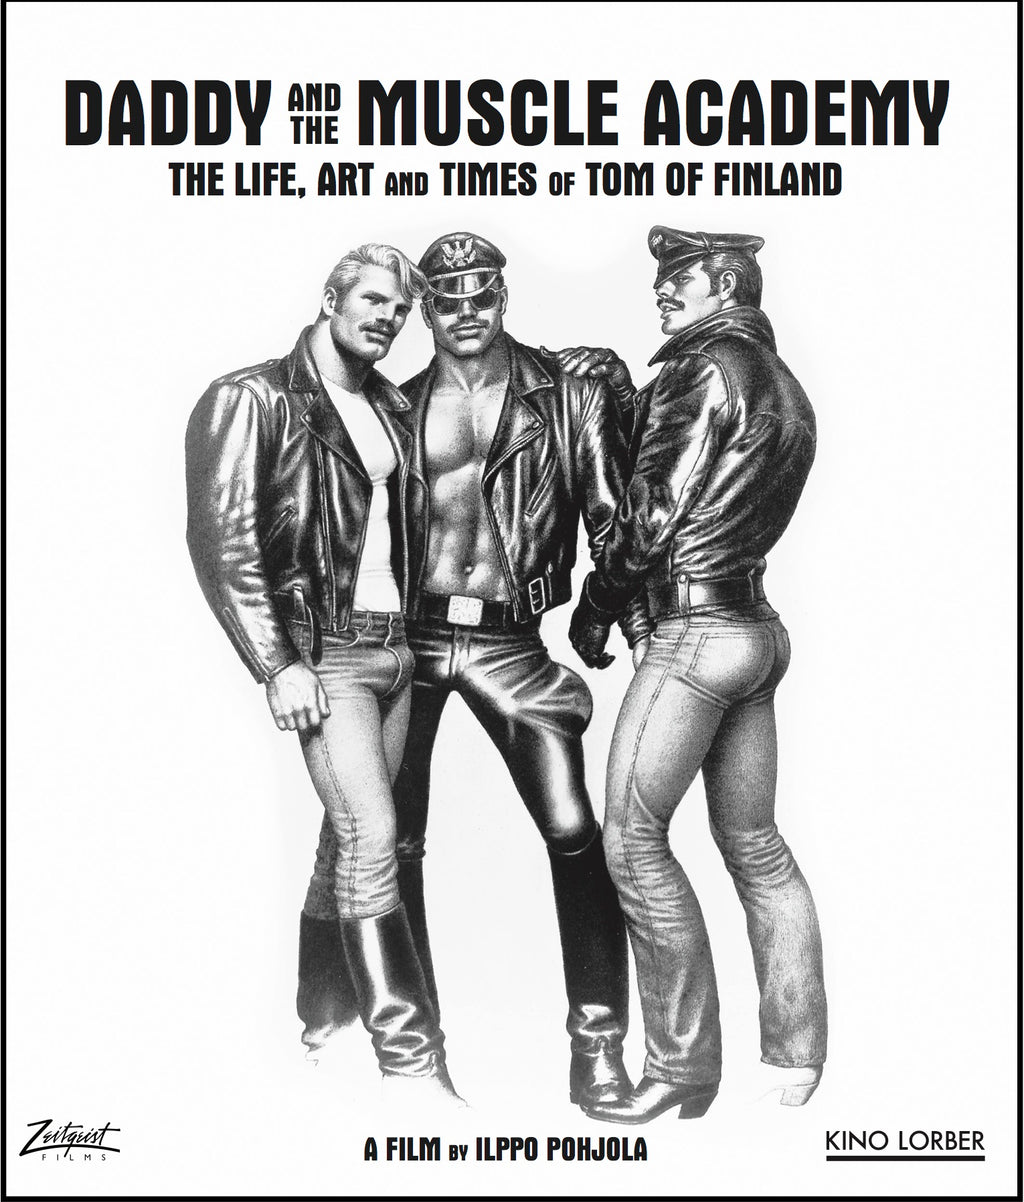 TOM OF FINLAND: DADDY AND THE MUSCLE ACADEMY DOCUMENTARY